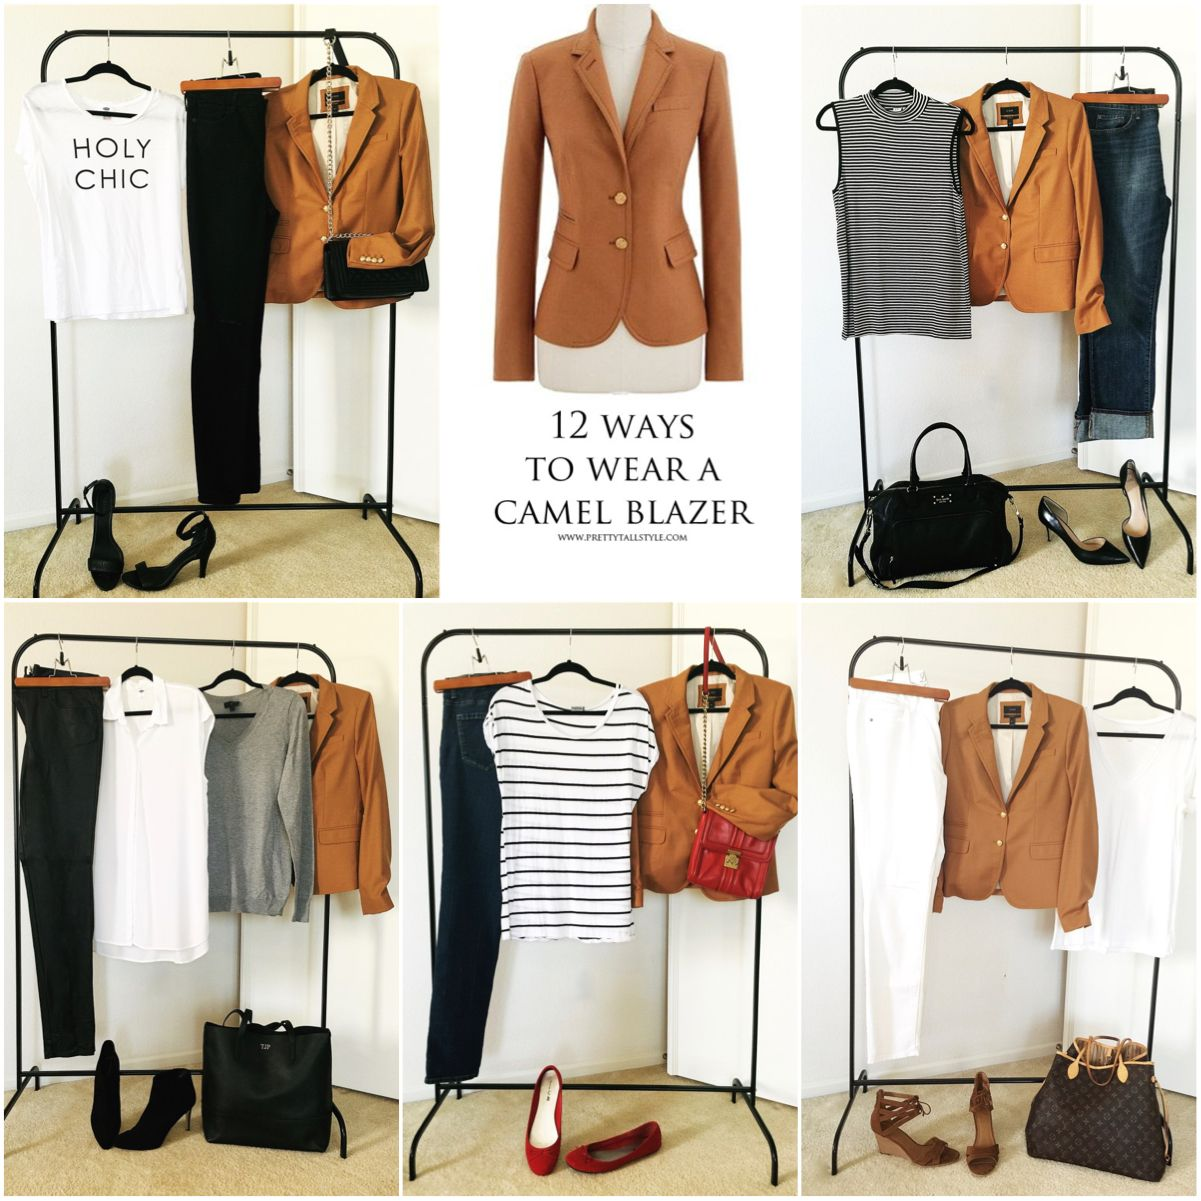 How to Wear a Camel Blazer 12 Ways #Fall #outfit | Fall-Winter ...